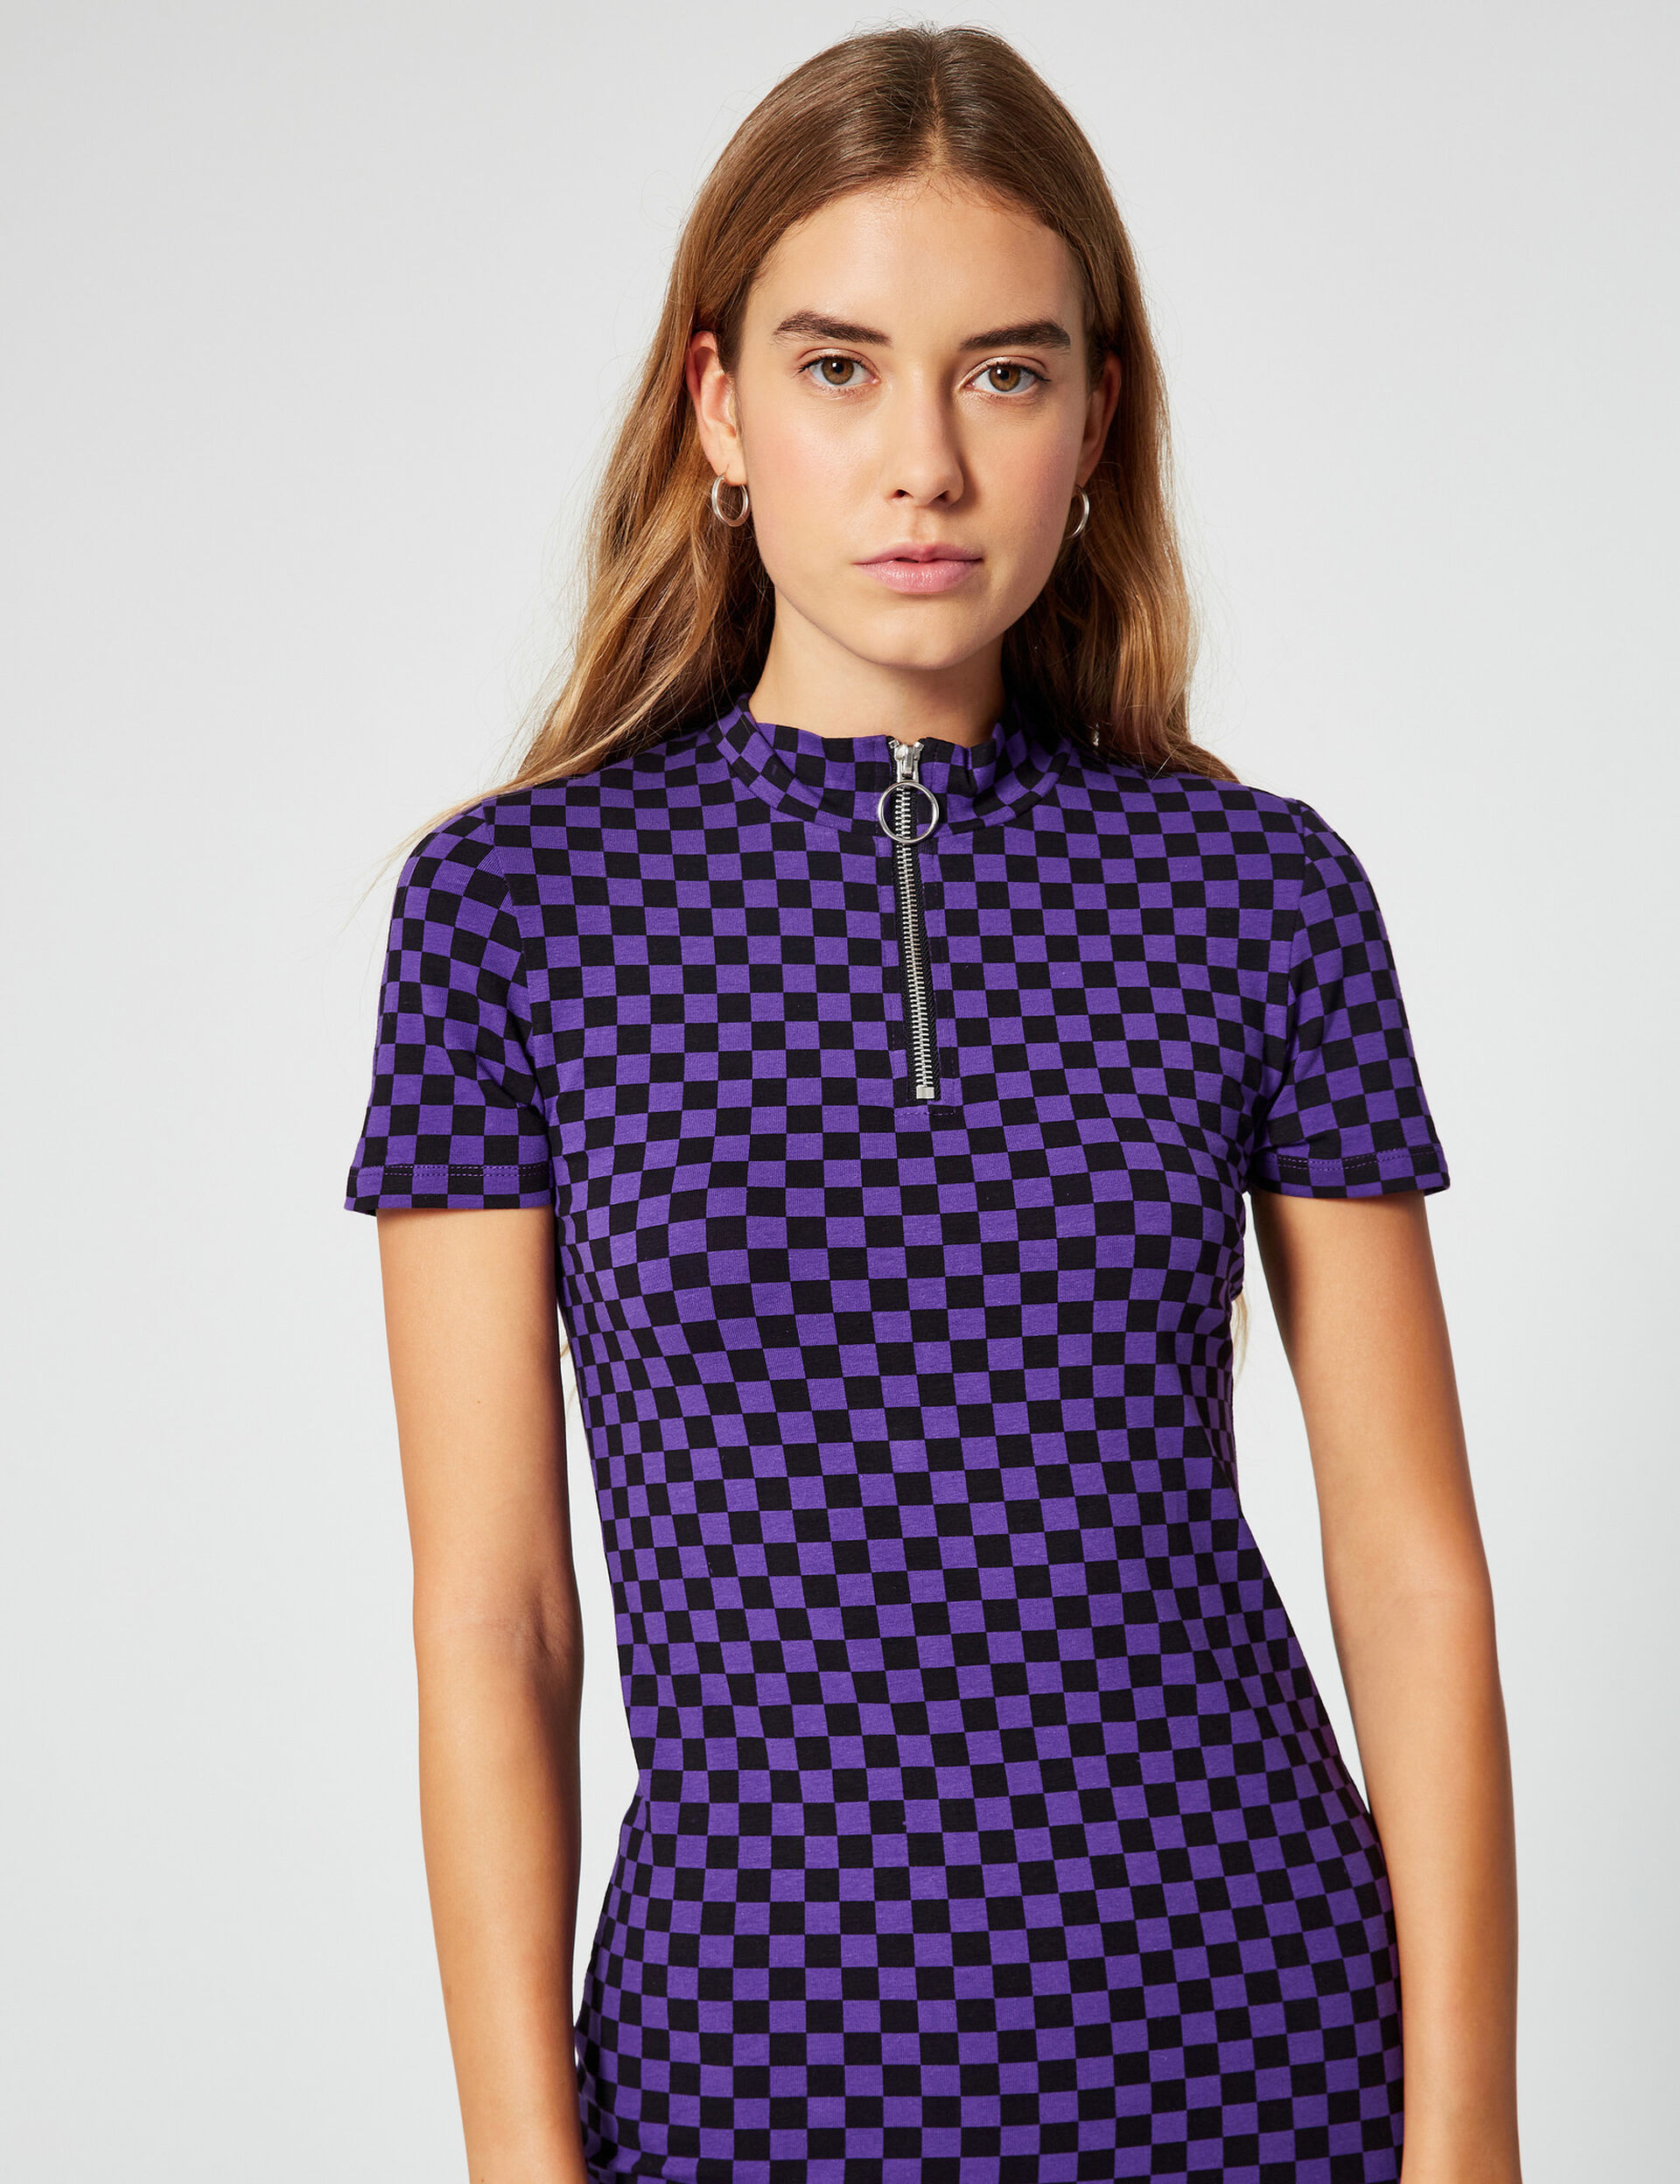 Chequered polo shirt dress